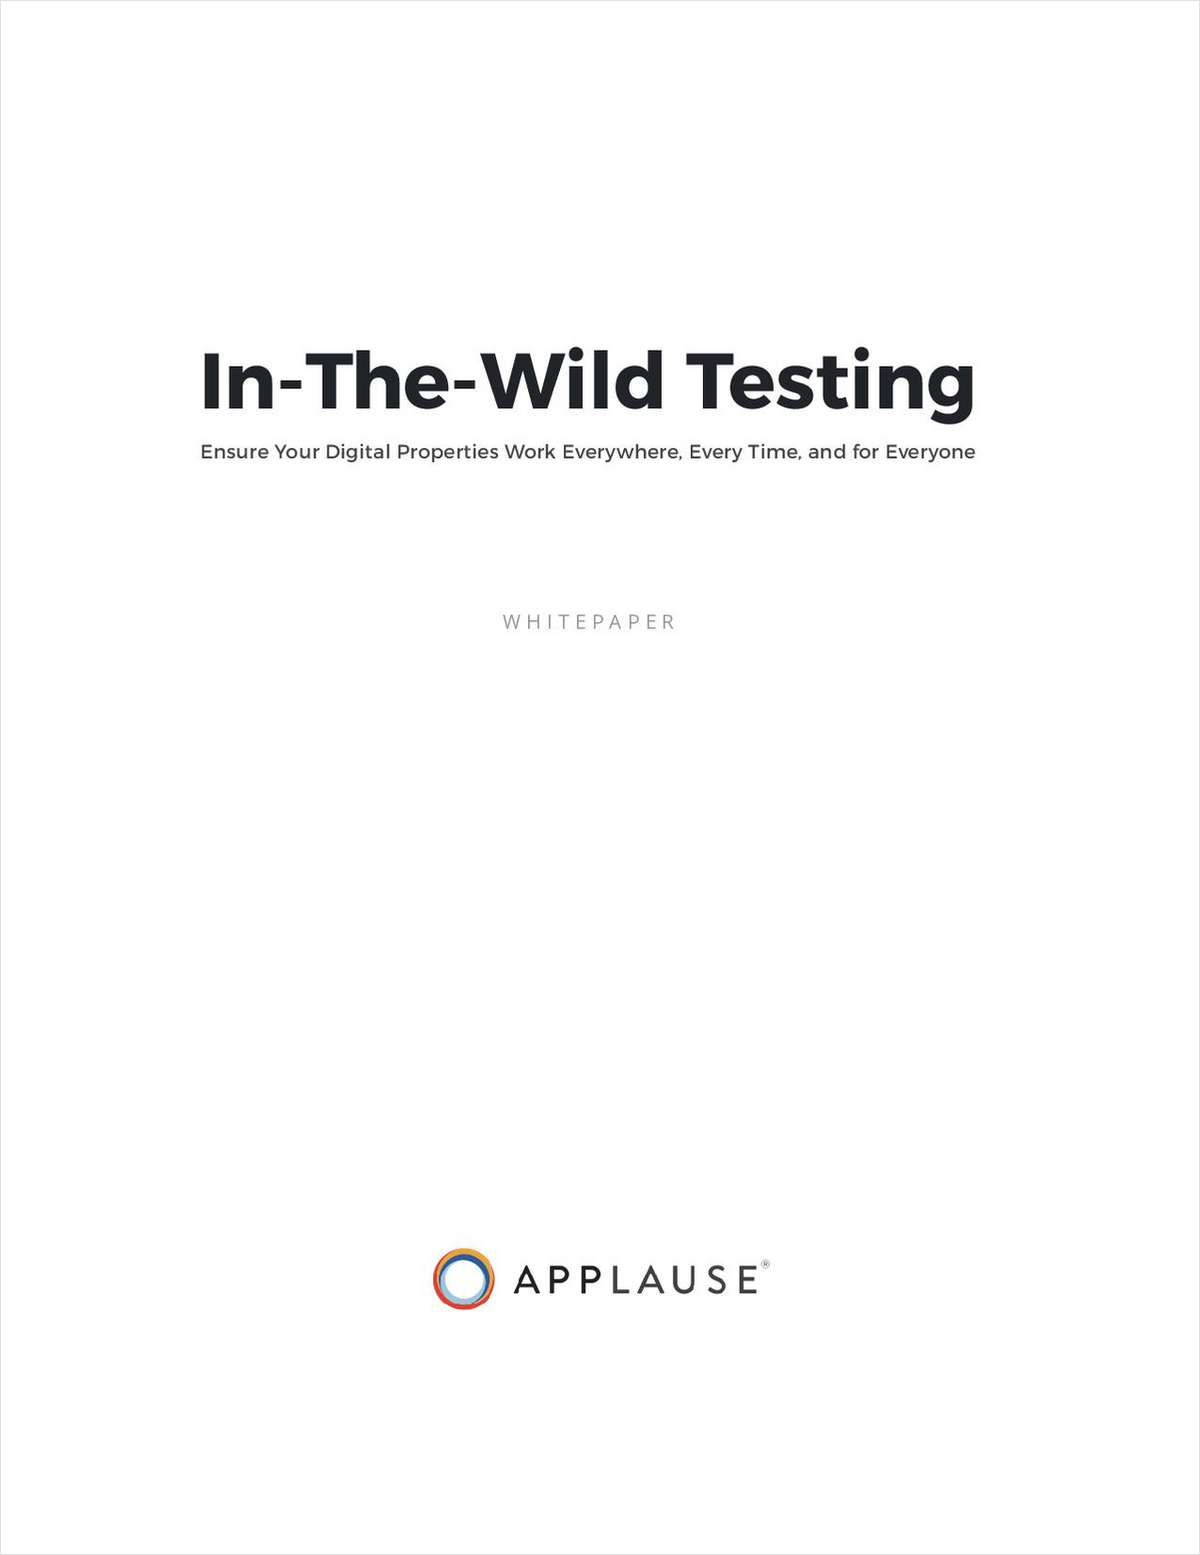 In-The-Wild Digital Testing